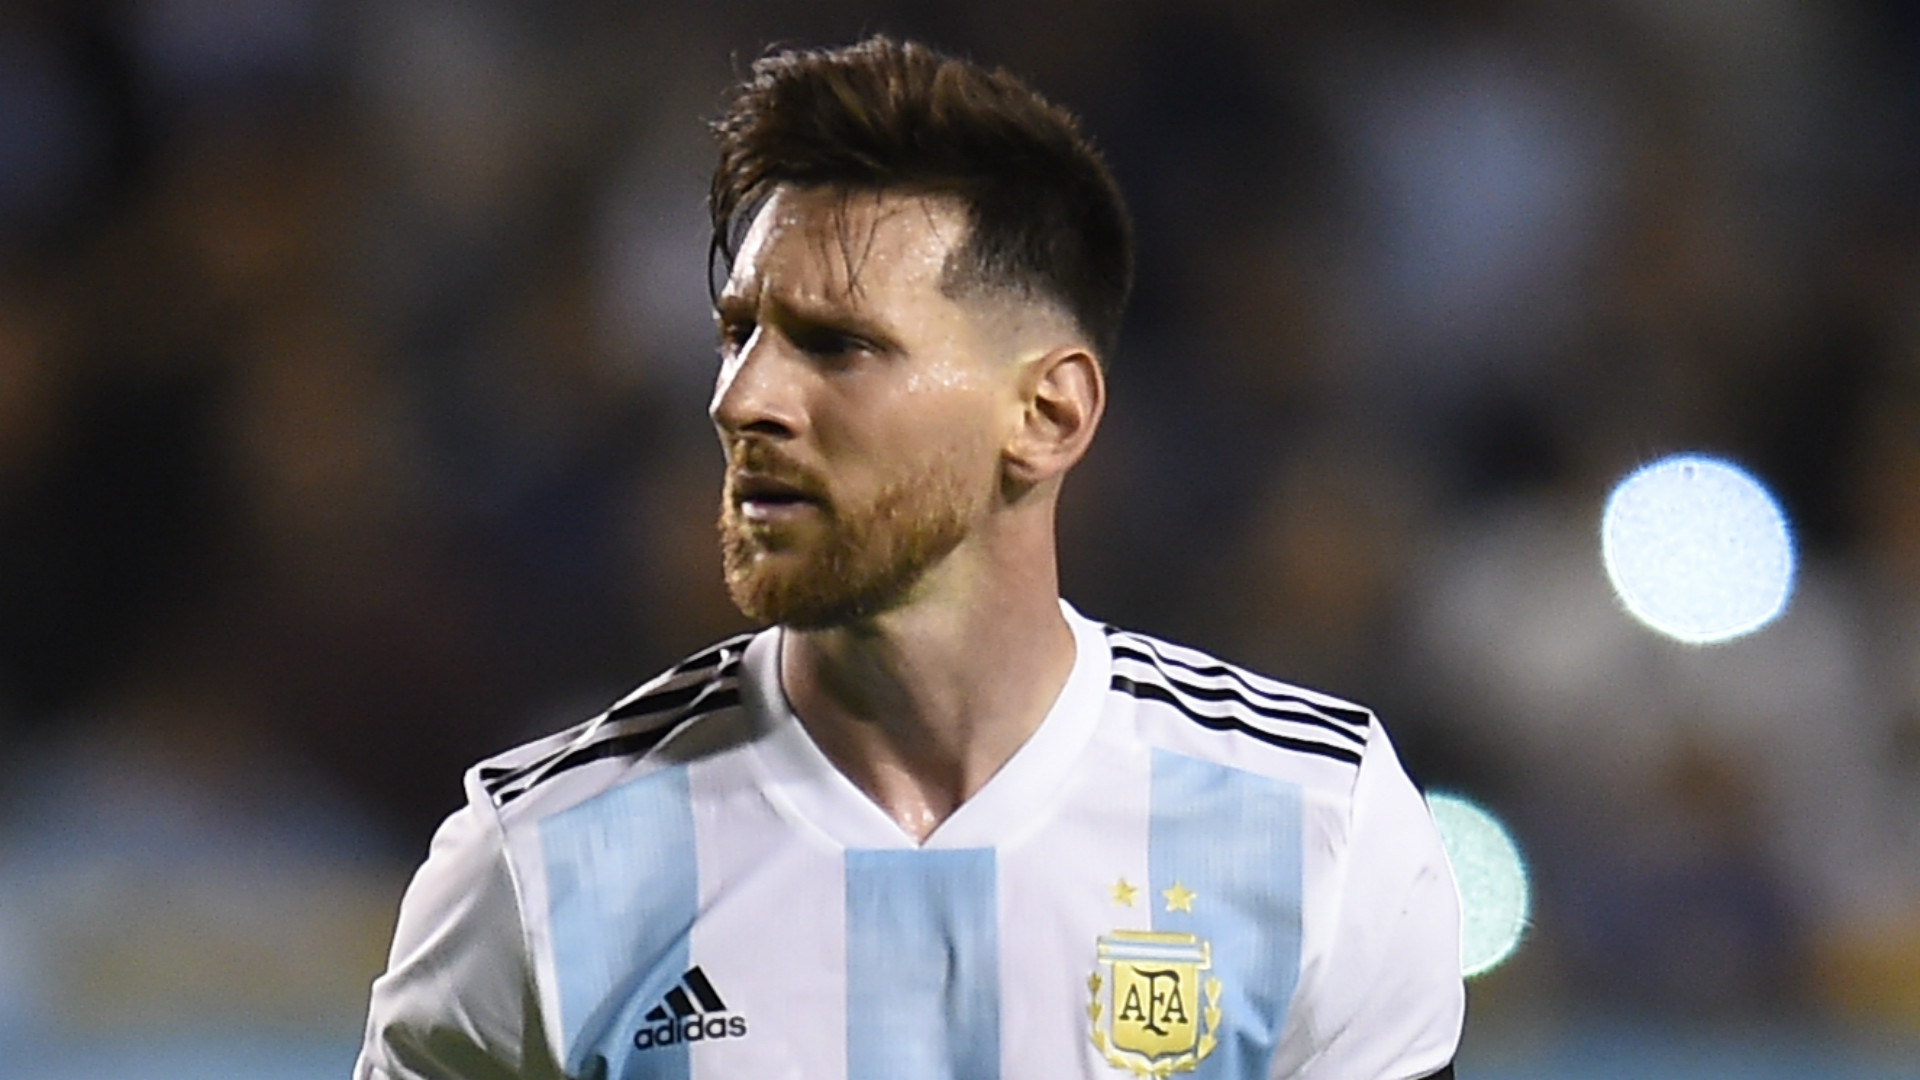 Messi-led Argentina cancels friendly match with Israel after outcry